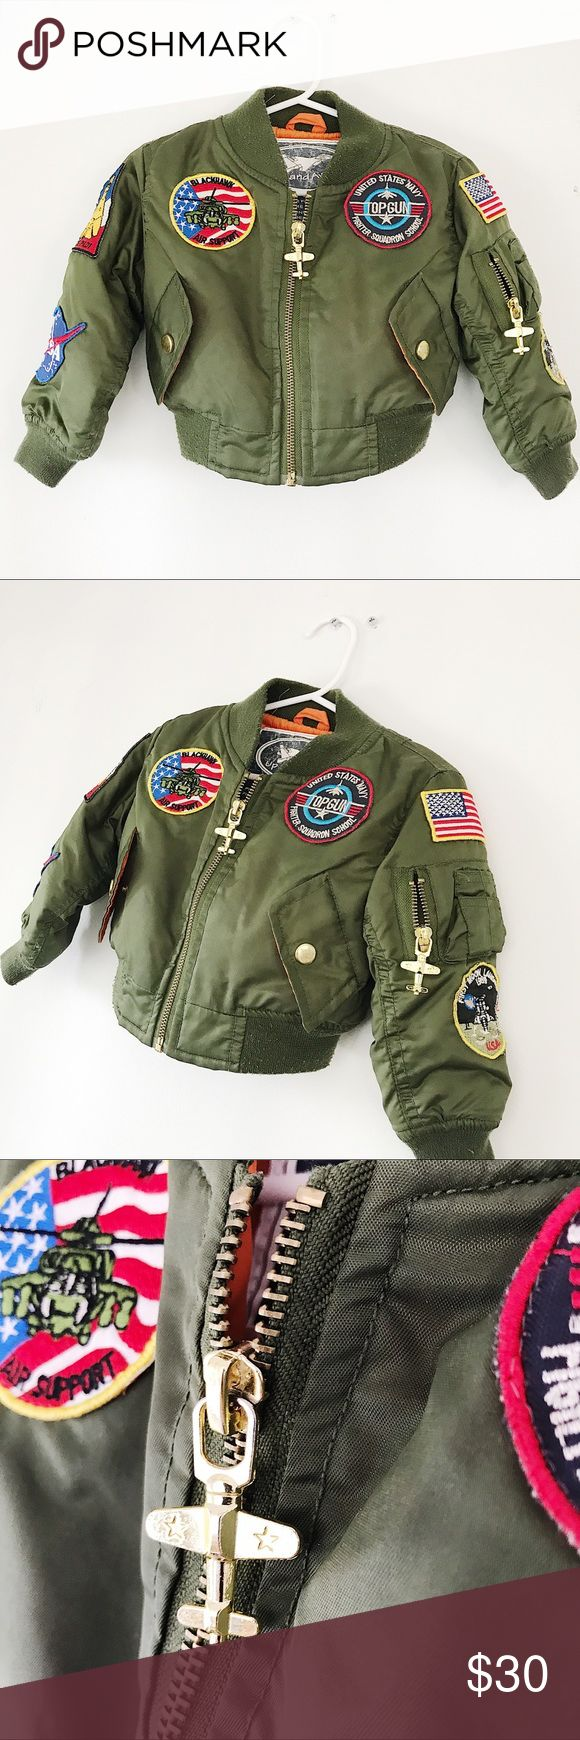 The Toddler Bomber Jacket This is unbearably cute and in great condition.  Uni-sex Fits age 10 - 18 month.  Miniaturized MA-1 Flight Jacket with Patches.  Olive green with the traditional orange lining.  Patches through out well seen on.  Gold-tone metal airplane zipper pull.  Functioning front zipper and sleeve zippers.   Jacket is traditional fall-winter bomber weight.  Moon patches, airborne patch, and more!  See pix. Up and Away Jackets & Coats